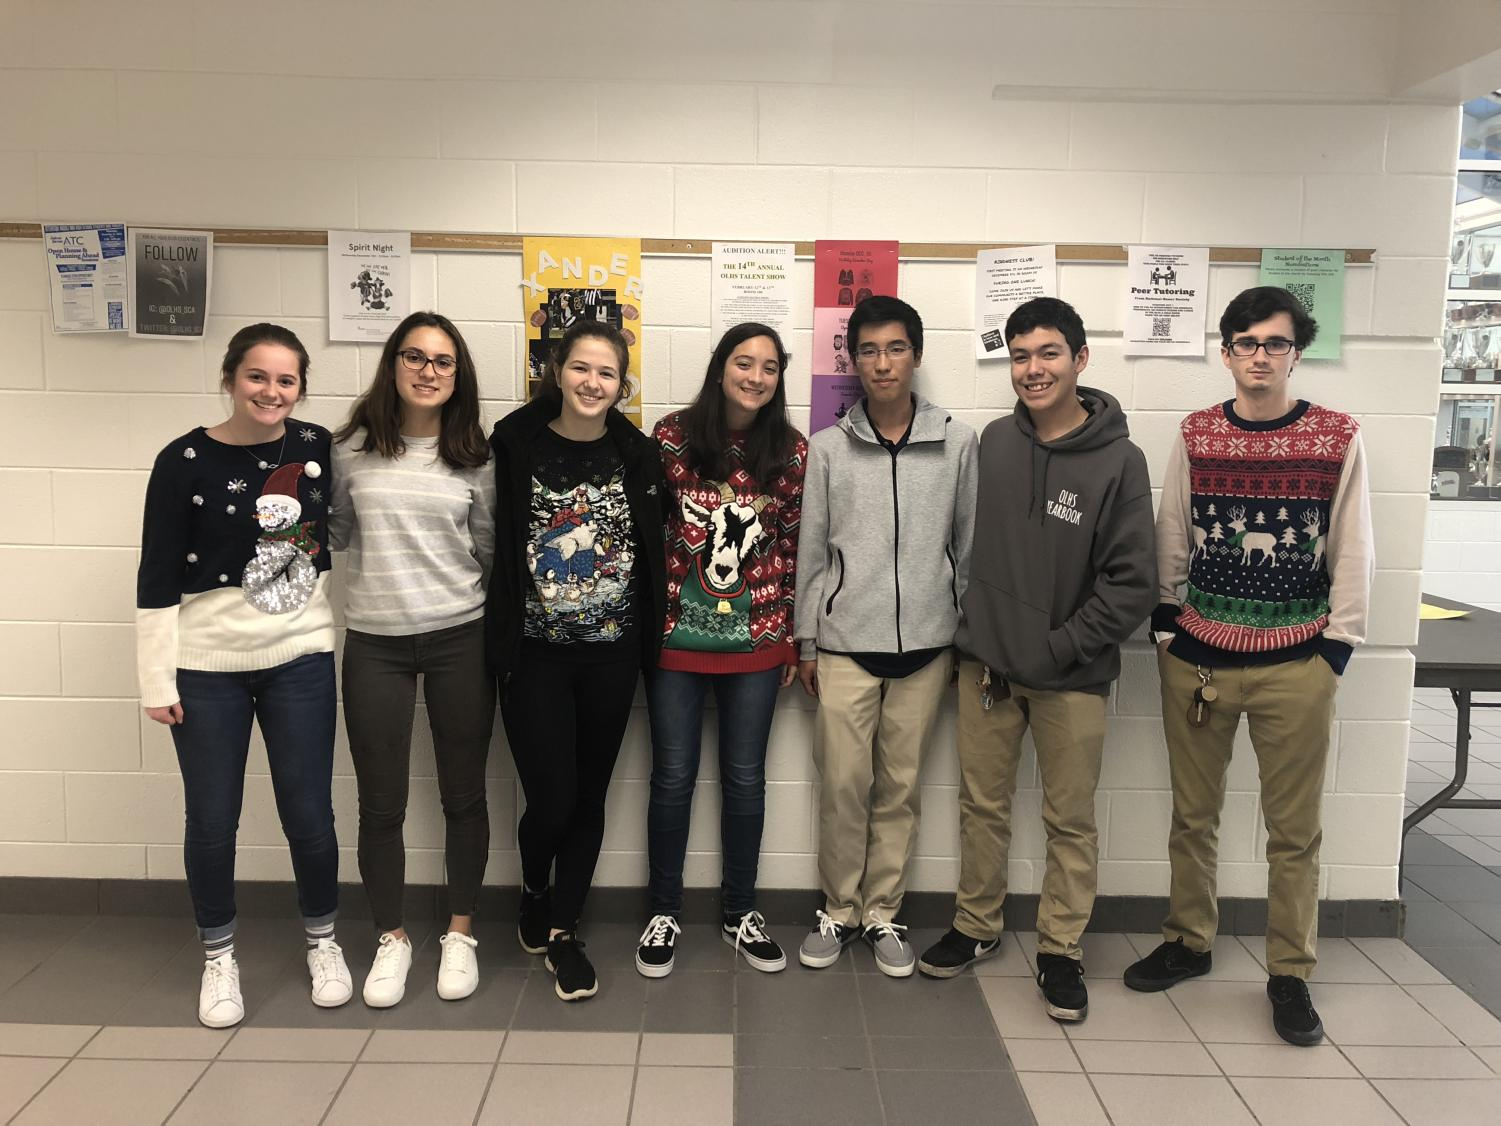 The TARC team from left to right,  juniors Abigail Hicks, Denitsa Dimitrova, Elizabeth Young, Maren Kelley,  Ryoma Harris, senior Ethan Schroeder,  junior Gabriel Chester,  and senior Jefferson Mathews (not pictured).